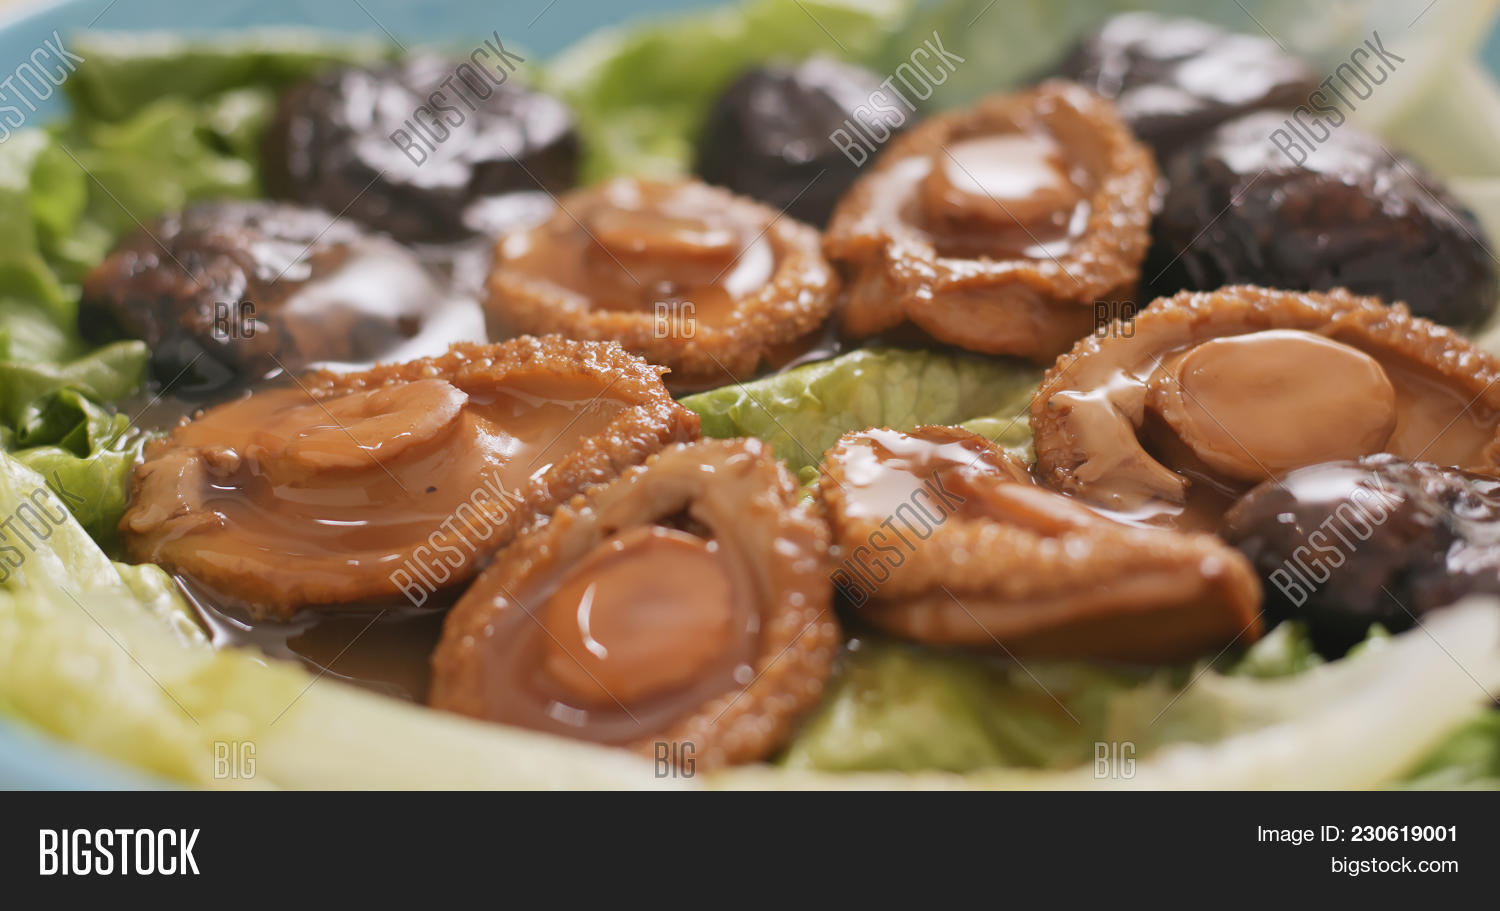 abalone,asian,background,celebration,chinese,cooking,cuisine,delicious,eat,expensive,fishing,food,fresh,fried,green,healthy,light,luxury,natural,nutrition,people,plate,production,restaurant,rice,sauce,seafood,simple,small,tasty,texture,vegetable,white